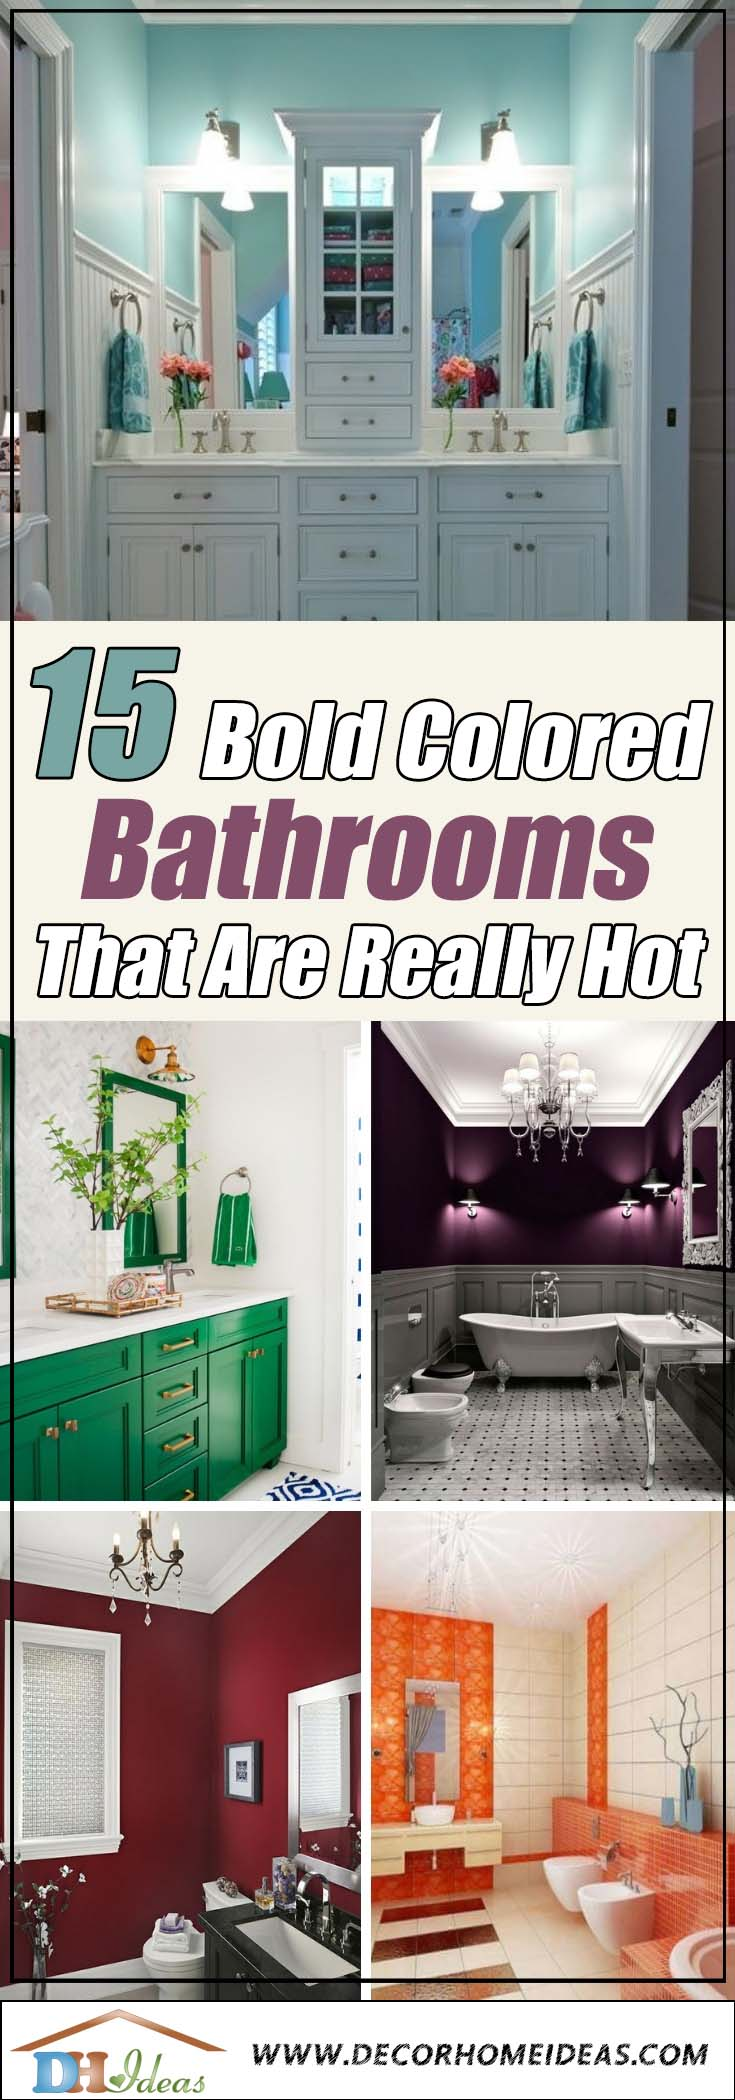 15 Boldly Colored Bathrooms That Are Really Hot Right Now | Bold color paints for bathrooms. #bathroom #bathroomdesign #bathroomideas #bathroomreno #bathroomremodel #decorhomeideas